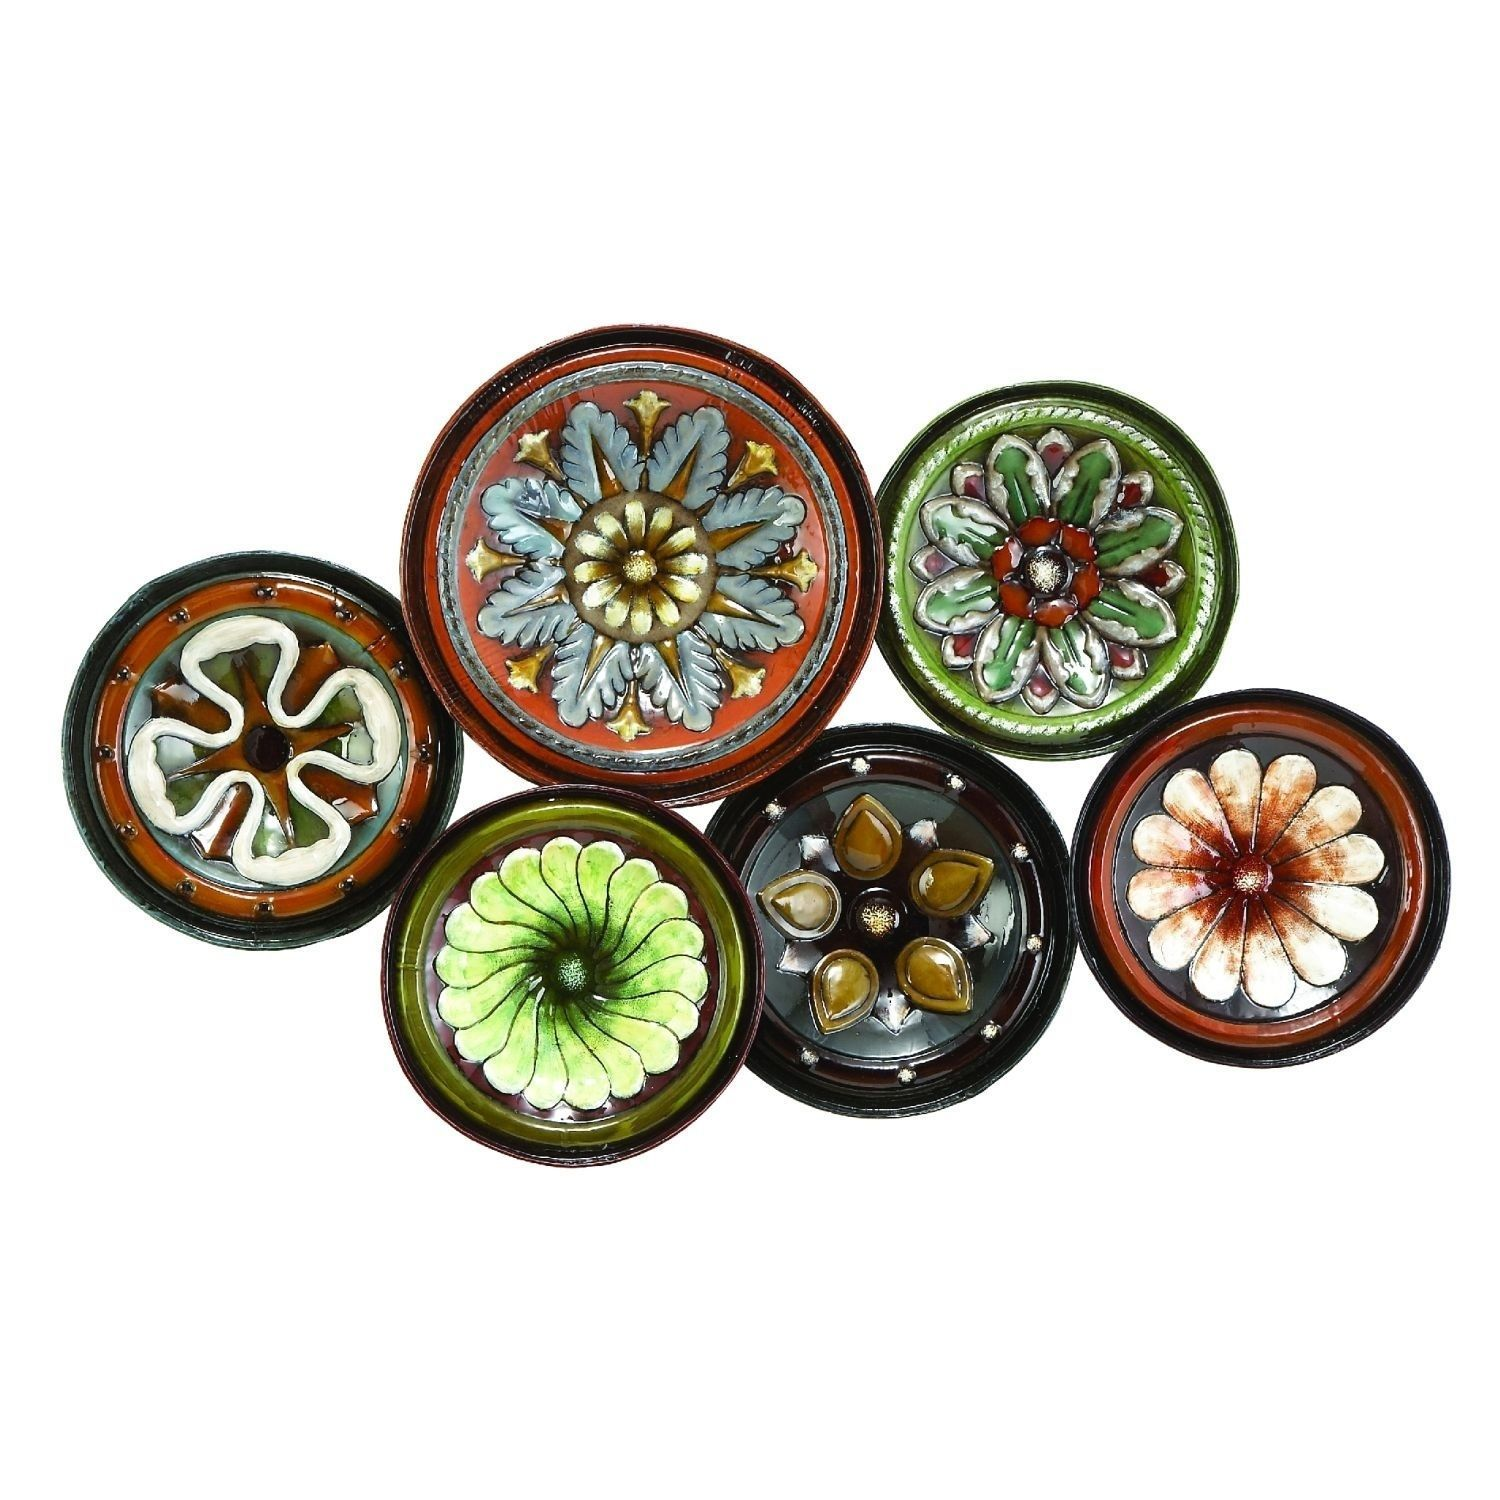 Benzara Metal Wall Decor With Six Round Plates Shaped